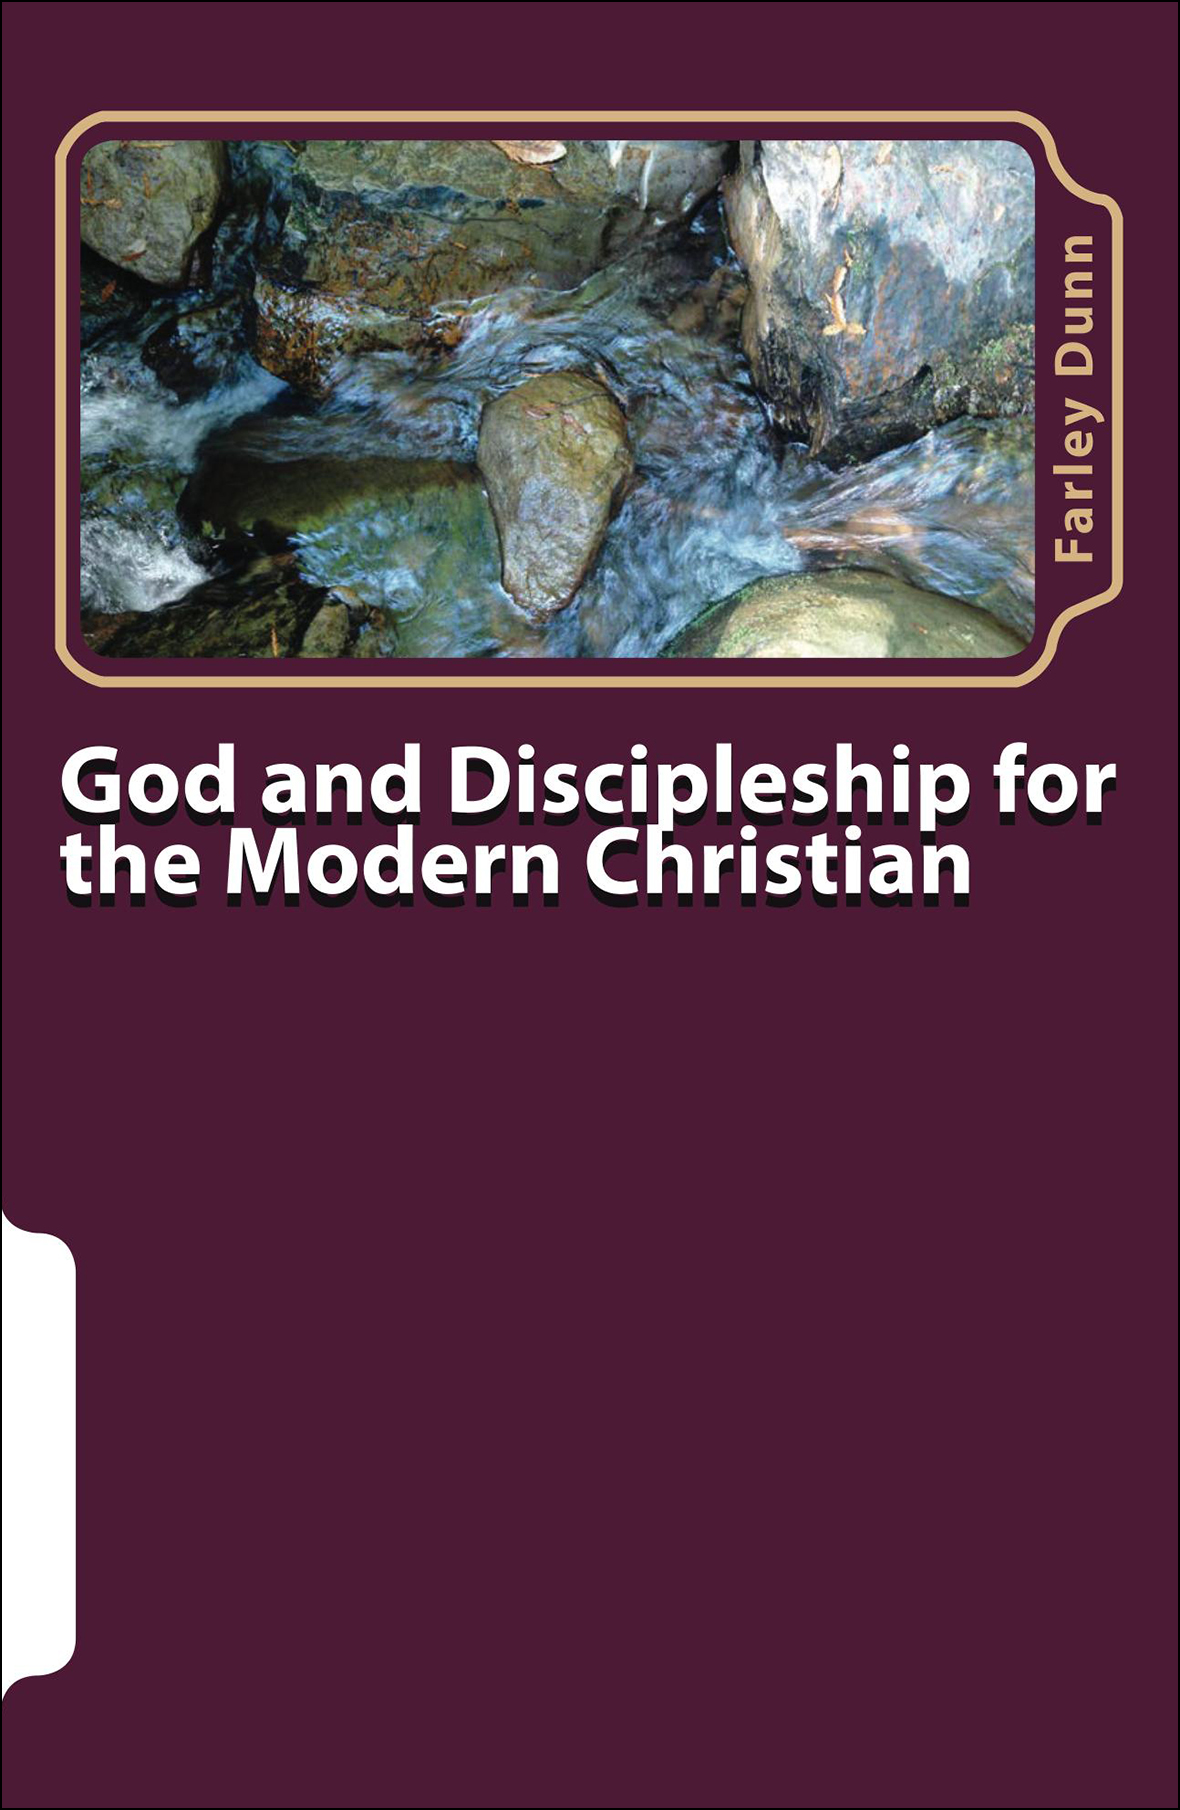 God and Discipleship Cover for web insertion Ver 1